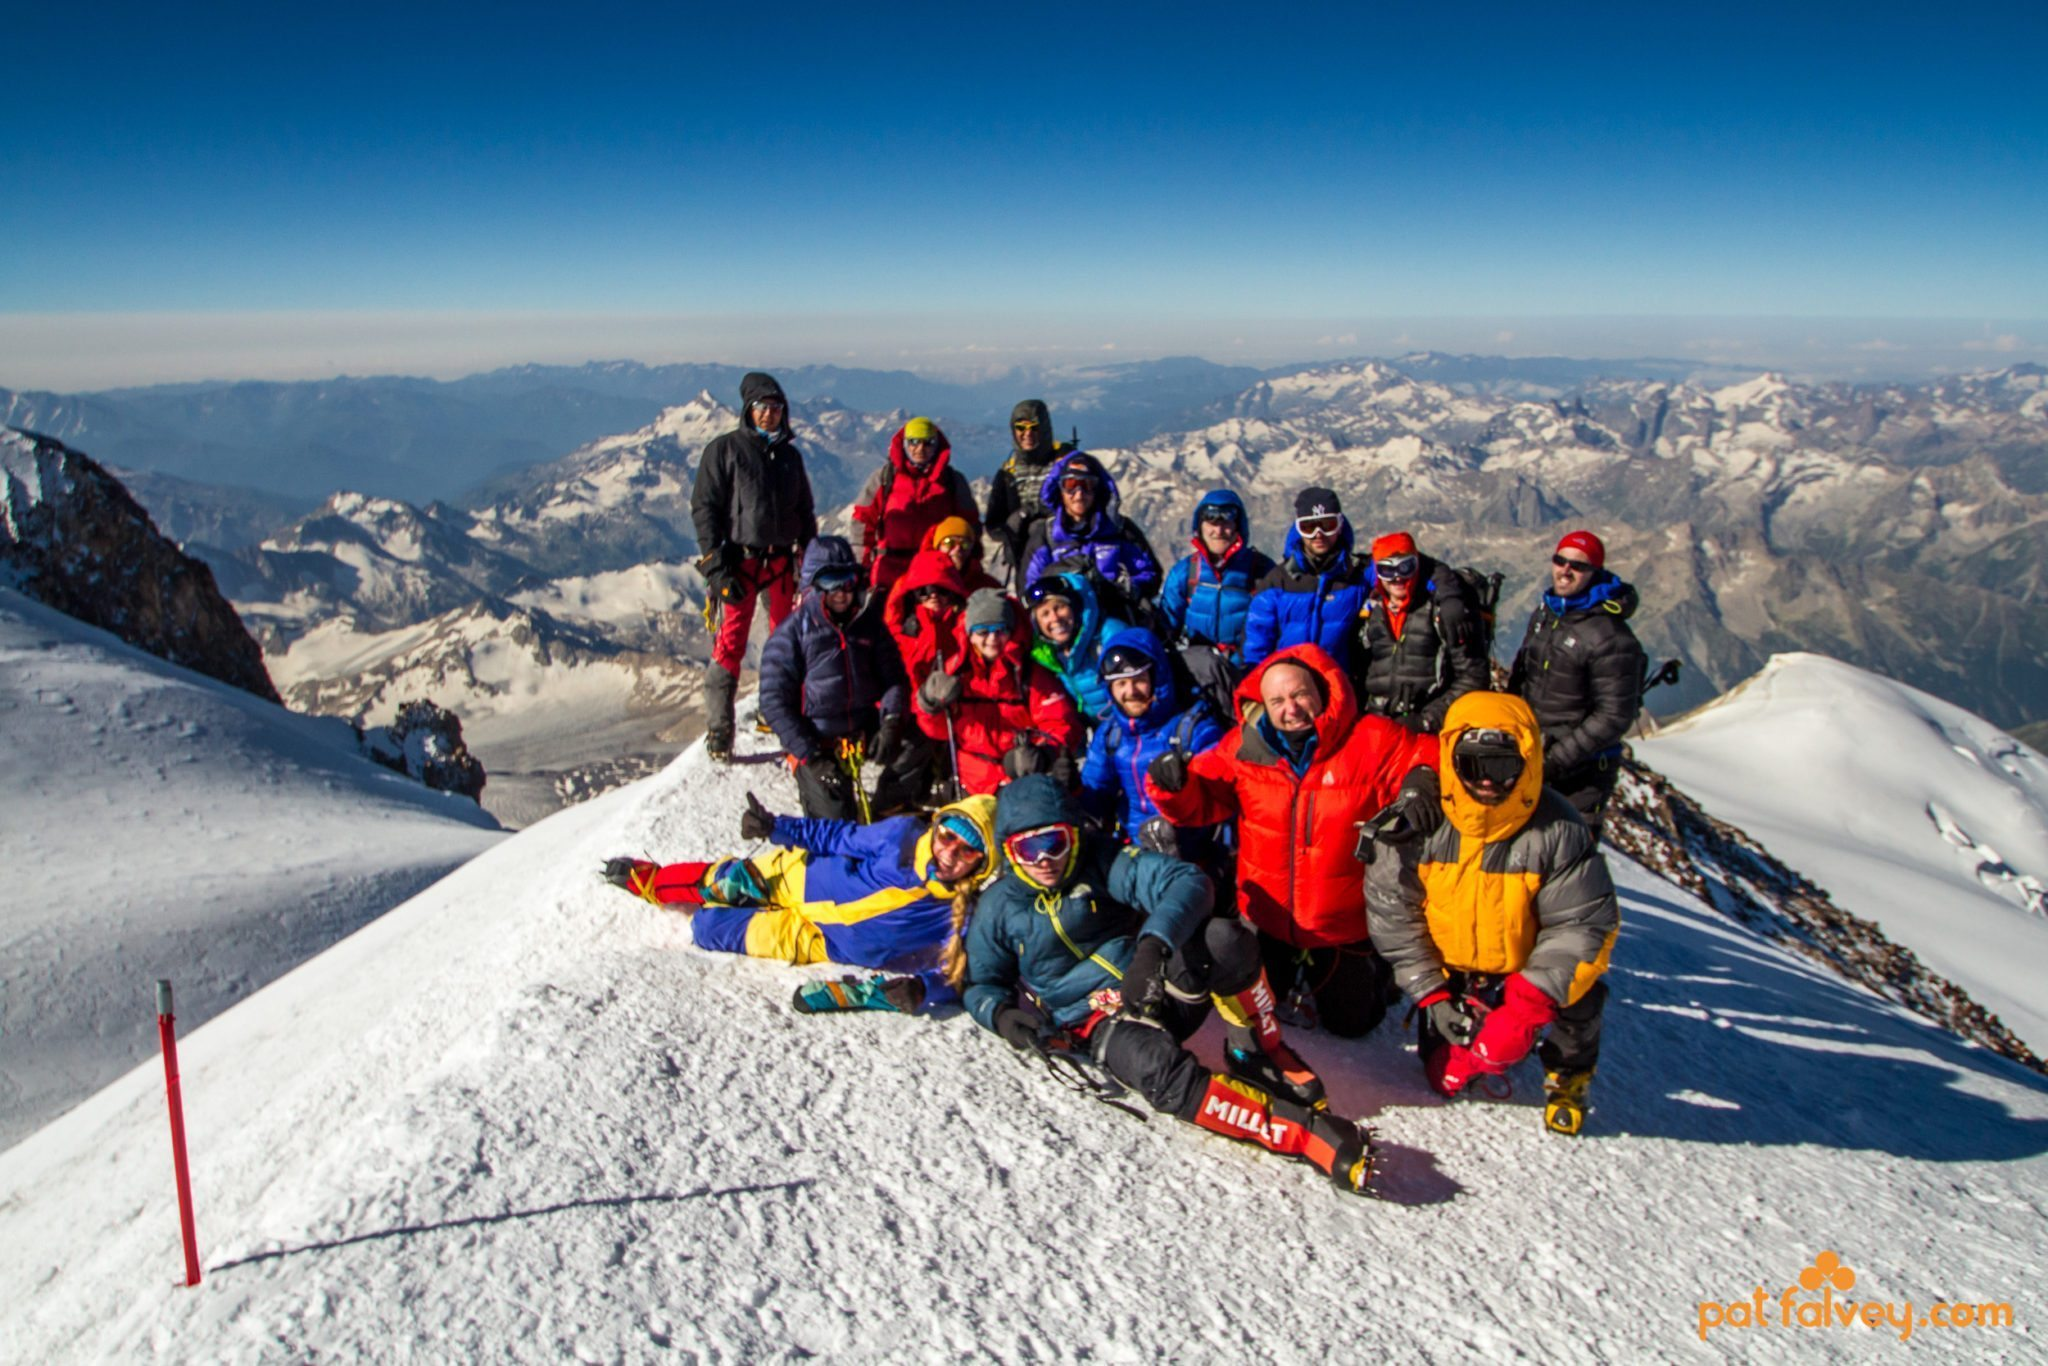 Mount elbrus pat falvey adventure travel expedition hiking a seventh summit snow and for Travel expedition gear